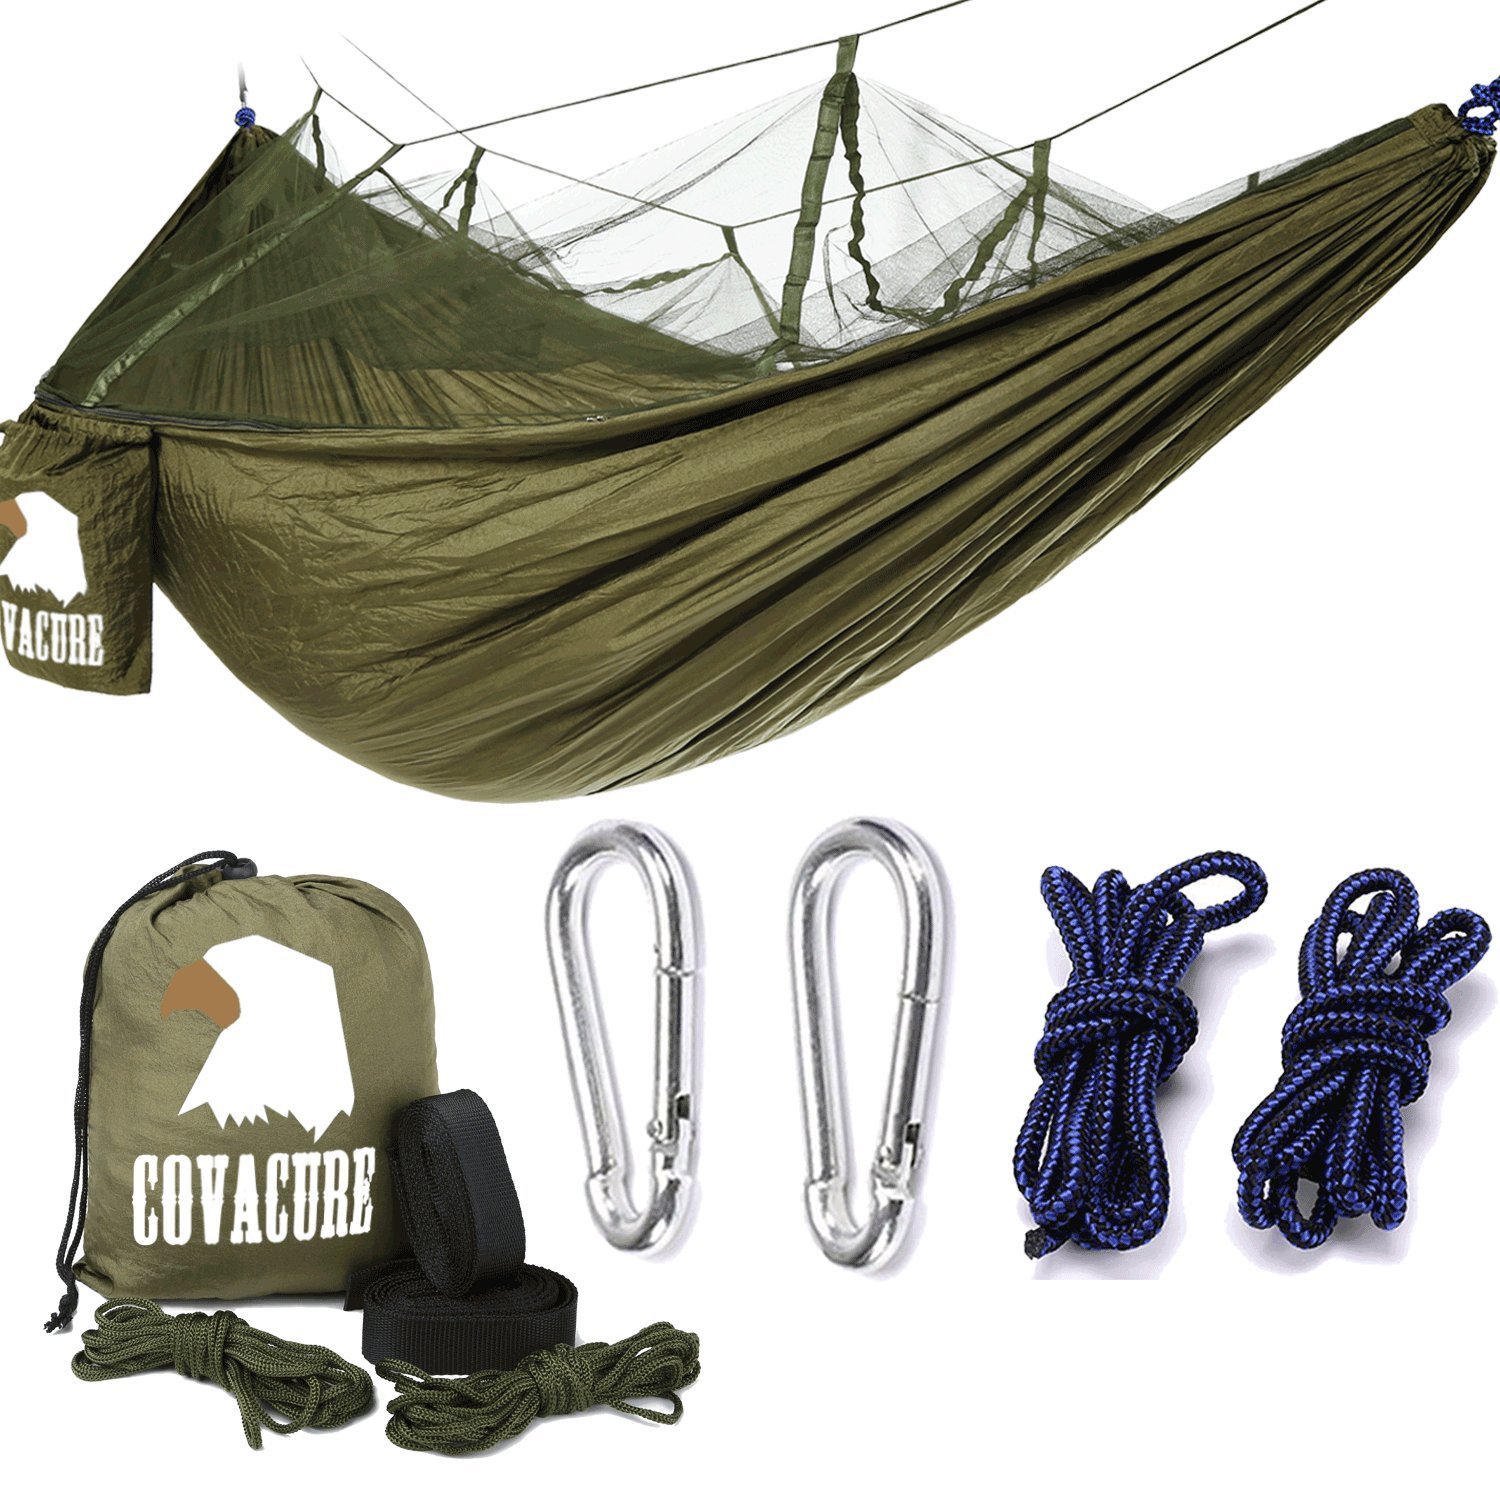 to foot expedition nomads hammock himalayan products gear adventure go